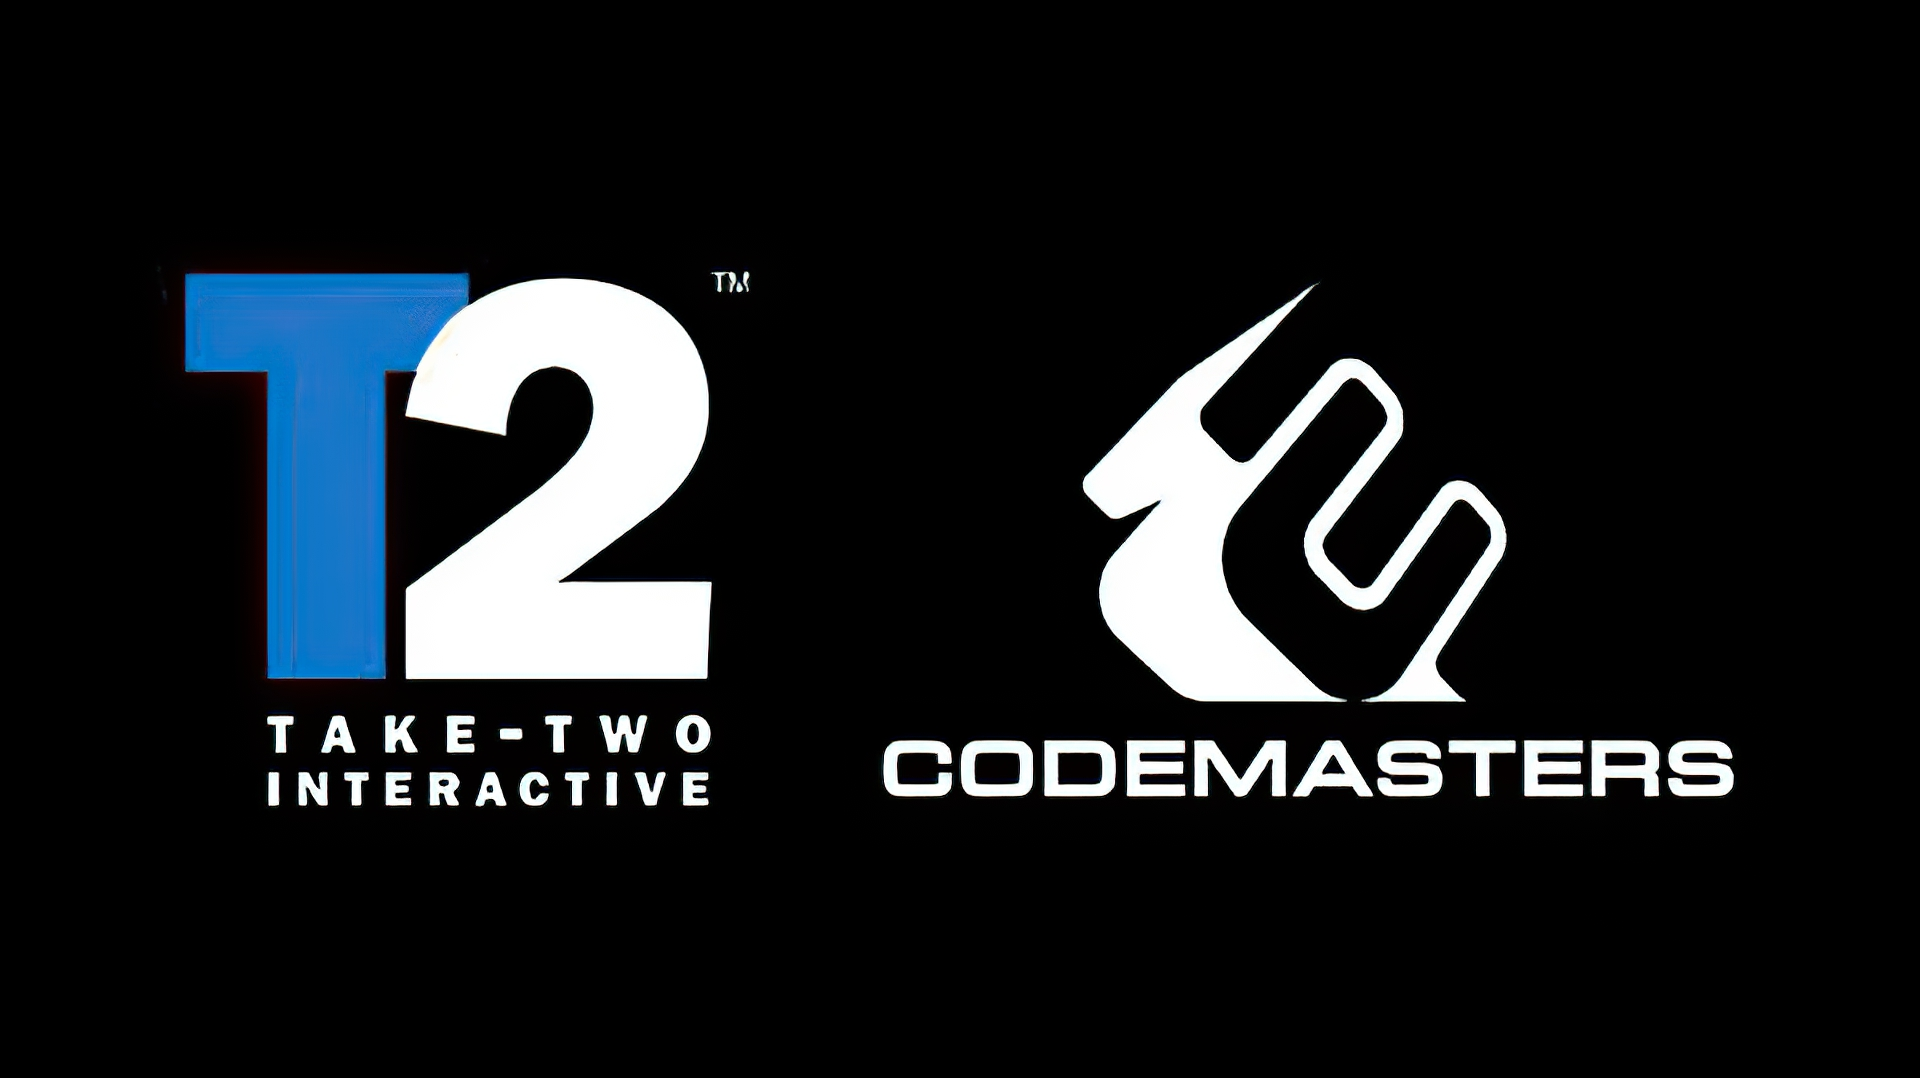 Codemasters Reportedly Accepted Take-Two's Offer, Sale to Complete in Early  2021